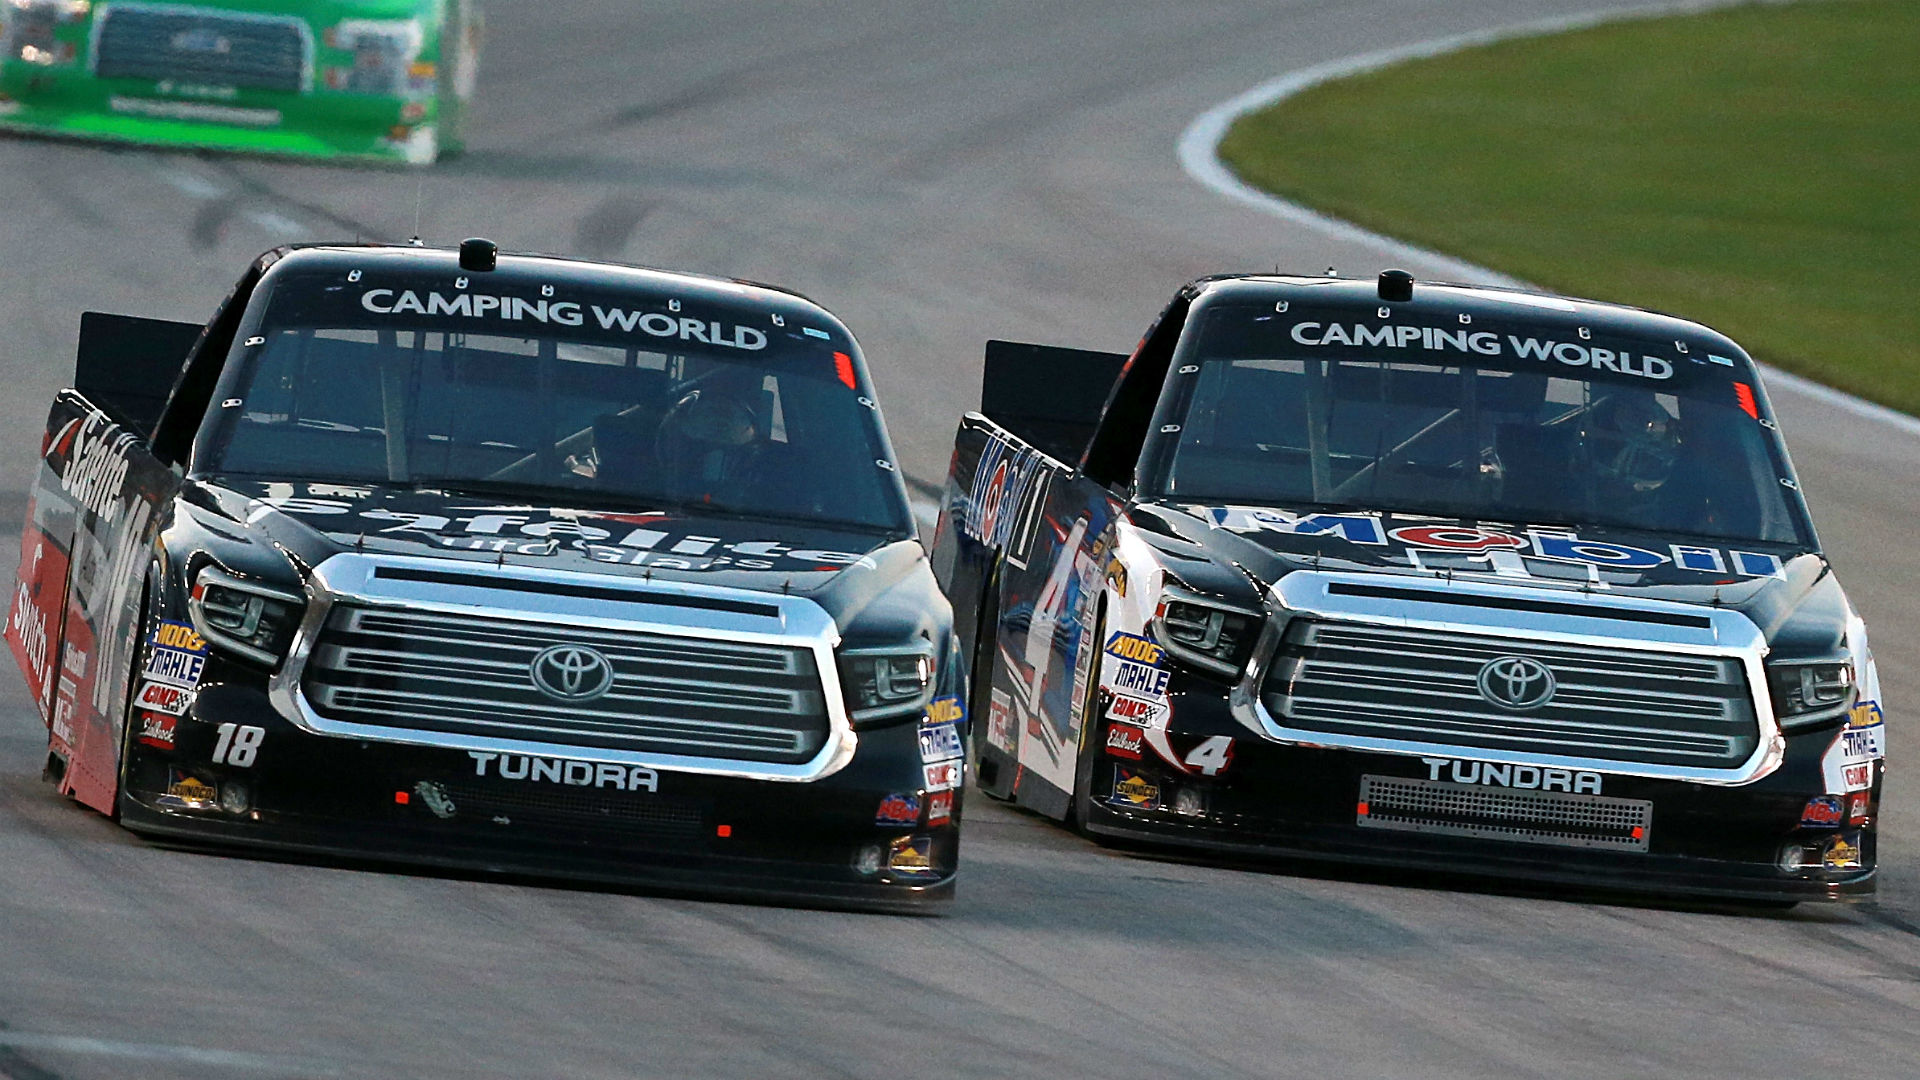 Justin Haley wins NASCAR Truck race after Noah Gragson, Todd Gilliland collide